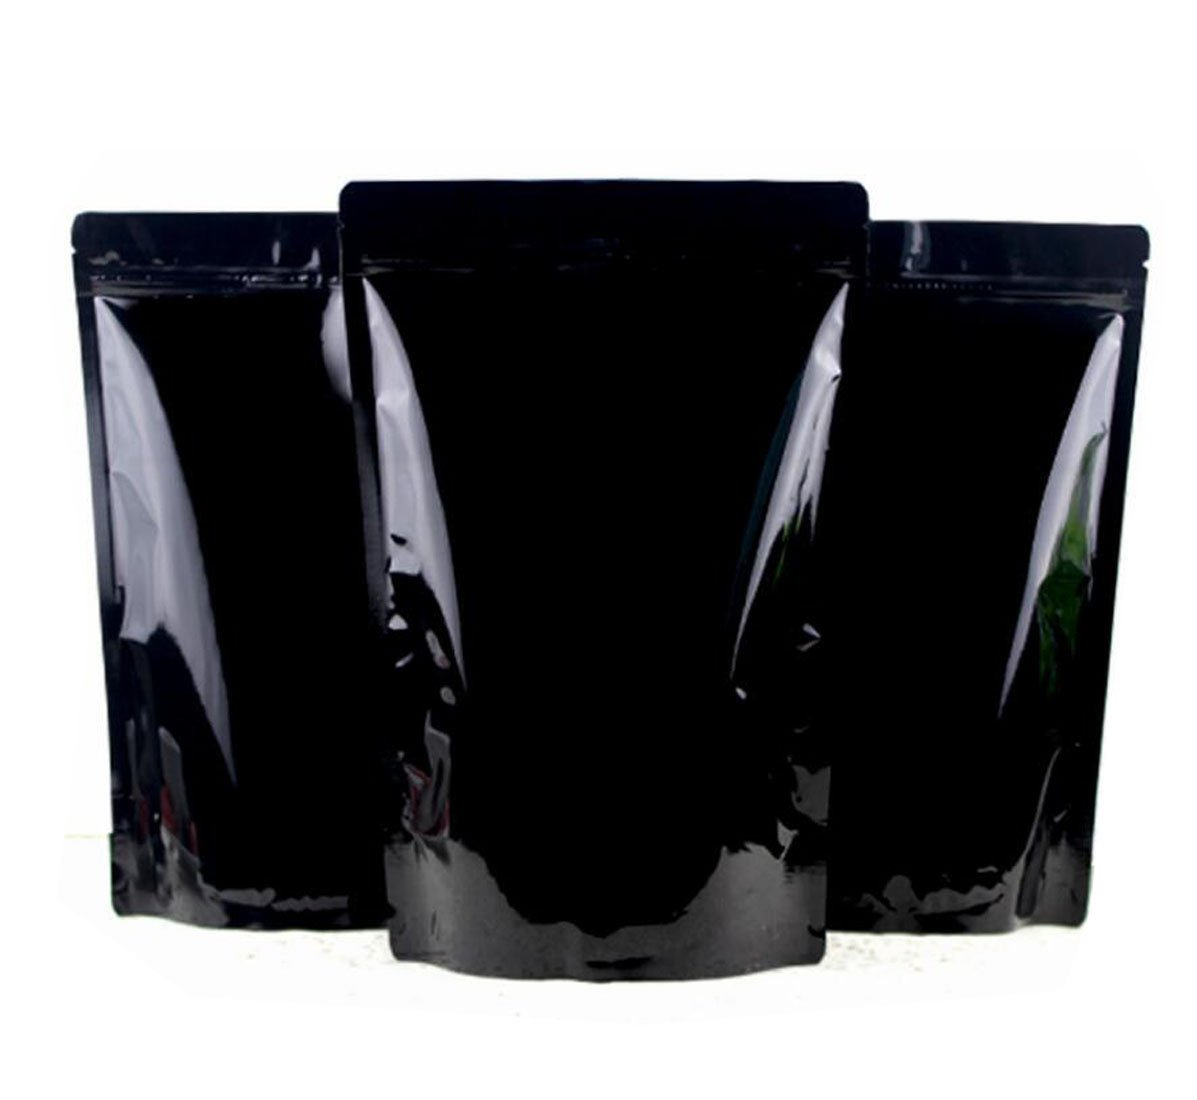 12Pcs Black Resealable Zip Mylar Bag Food Storage Aluminum Foil Bags Zip Lock Stand Up Food Pouches for Food Storage Bakery Candle Soap Cookie Snack Tea Powder Gift Basket Supplies size 20CMX30CM Ericotry